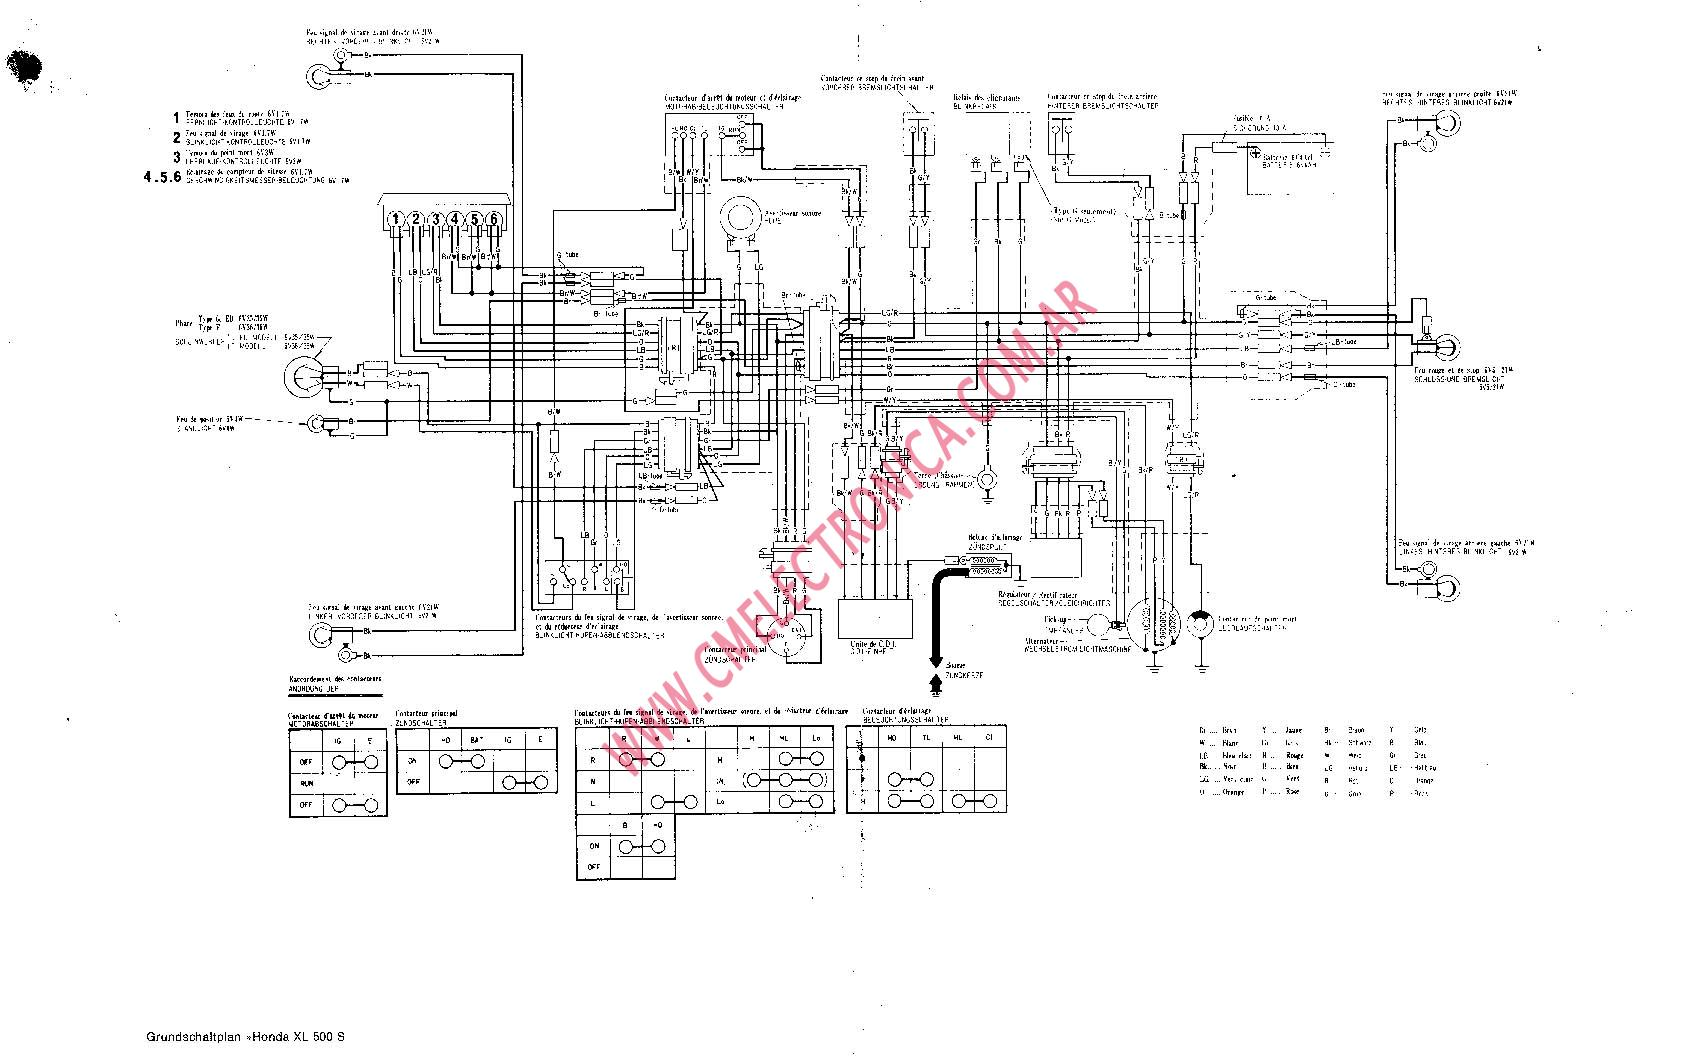 Wiring diagram honda xl 500